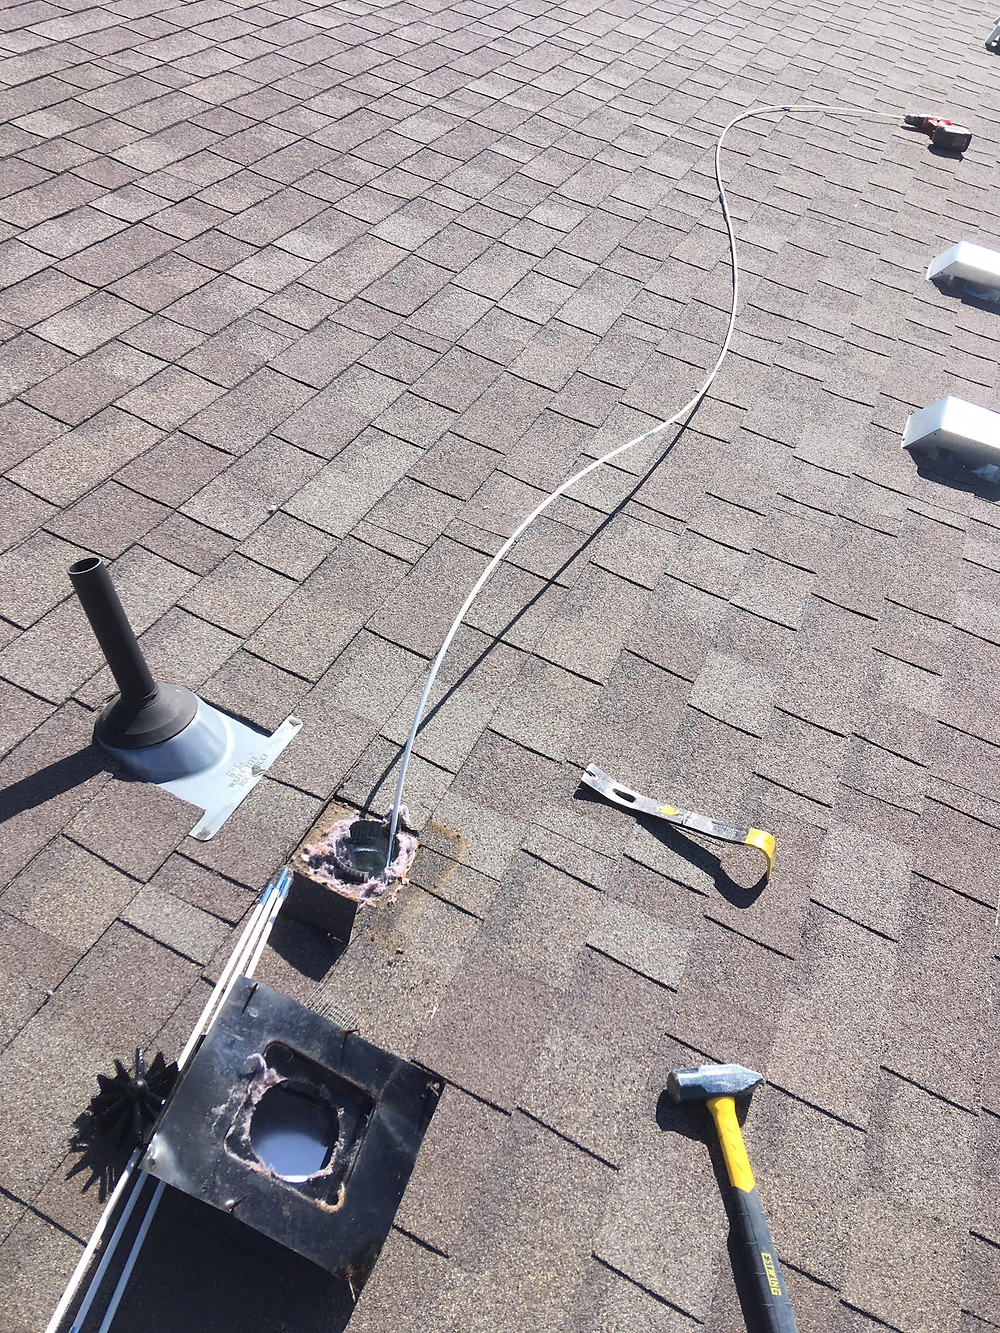 Dryer Vent Cleaning - Single Story Home